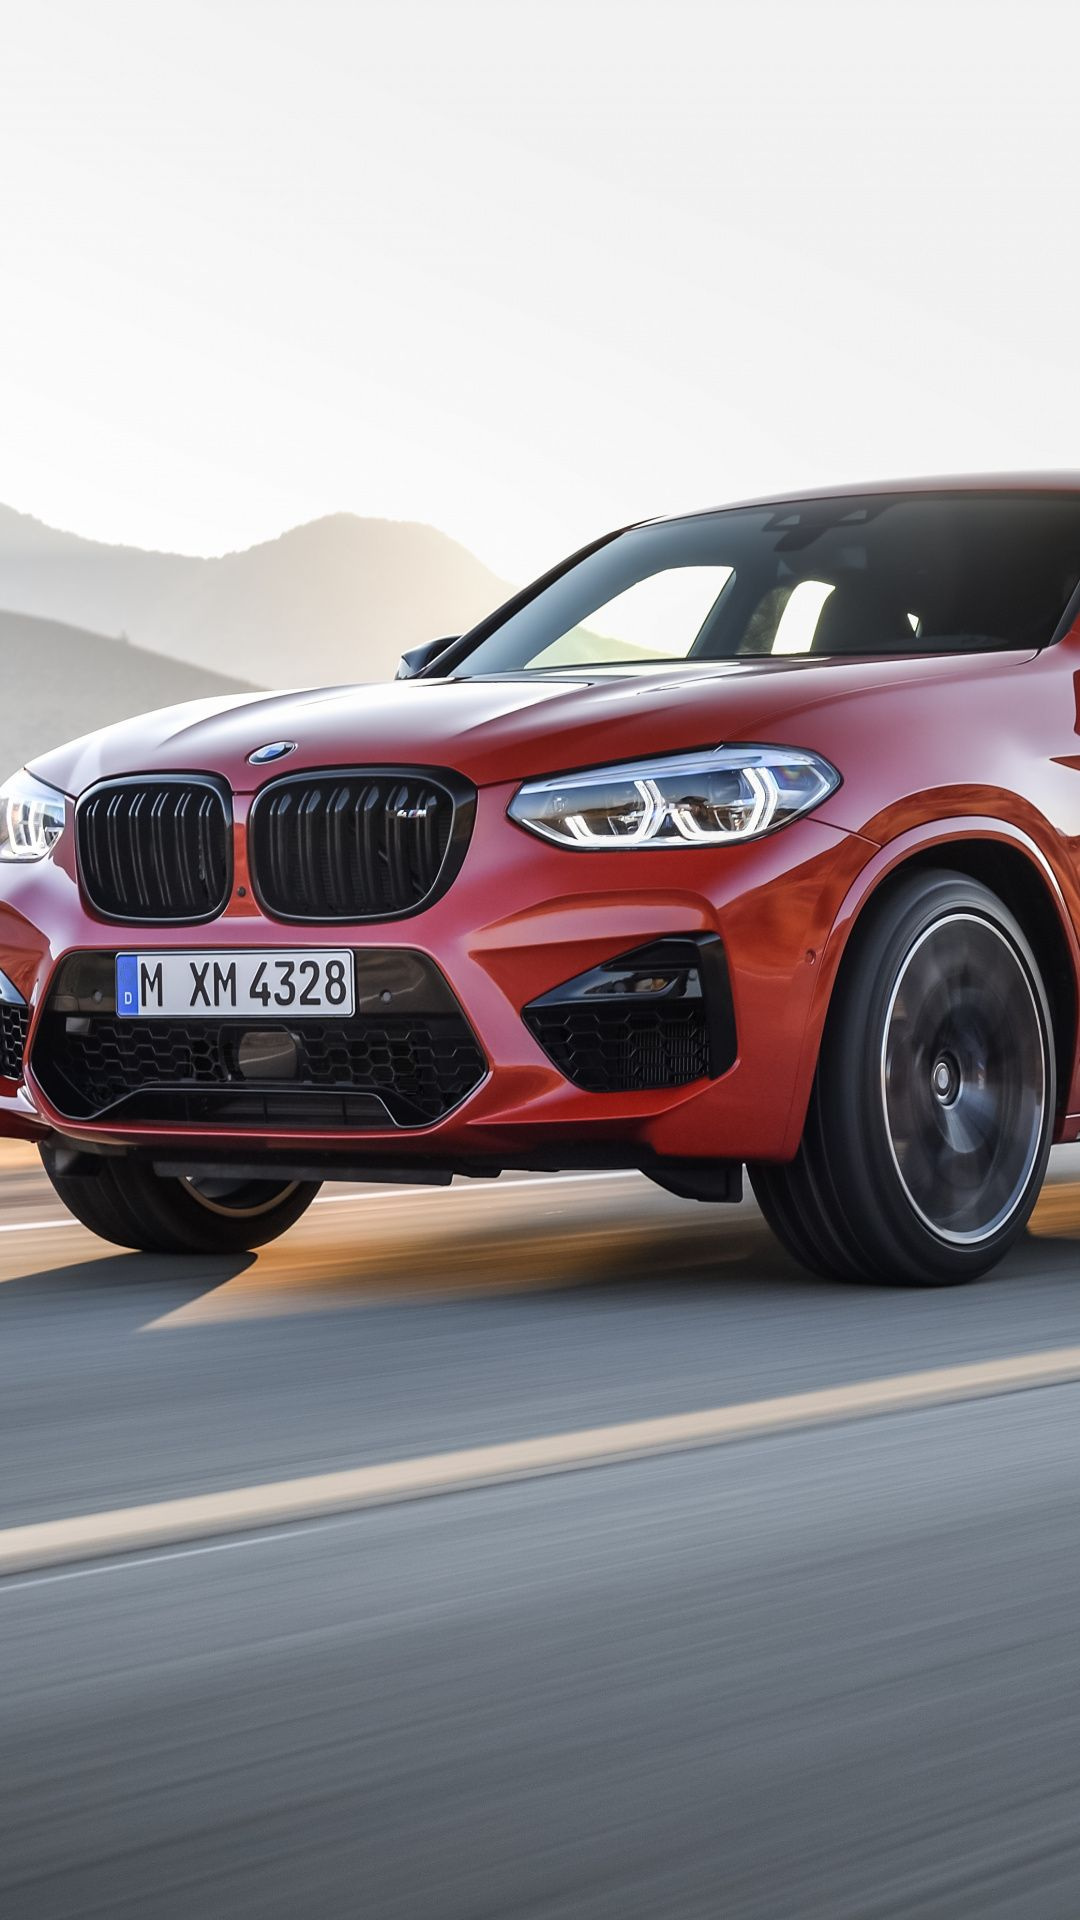 Downaload Luxury Car Red Bmw X4 Wallpaper For Screen 1080x1920